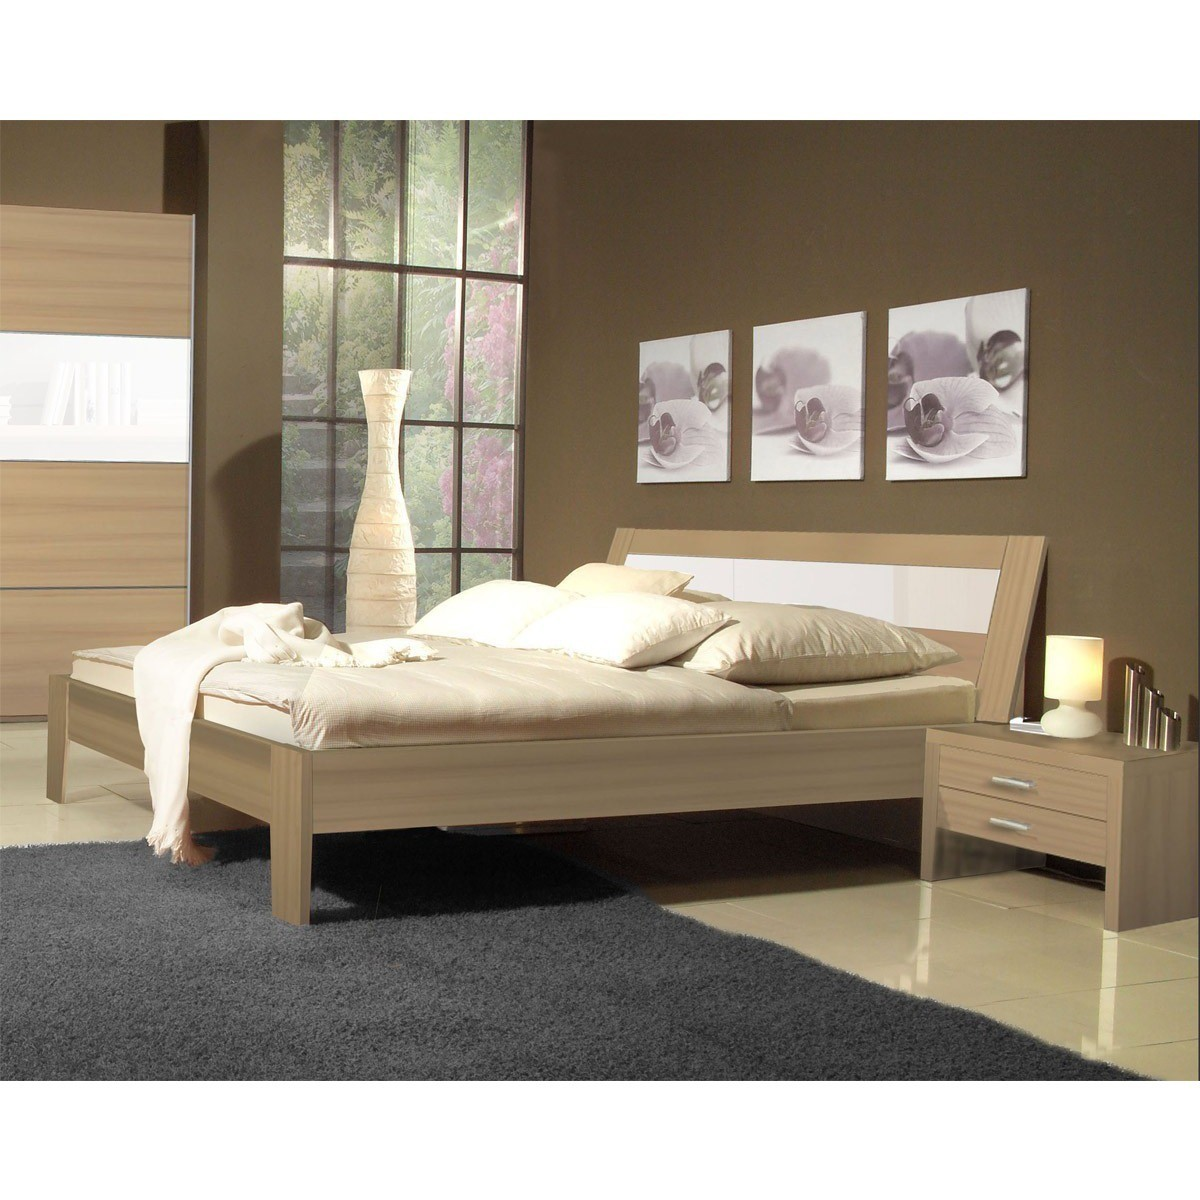 bett madeira 180x200 cm in nussbaum schwarzglas. Black Bedroom Furniture Sets. Home Design Ideas